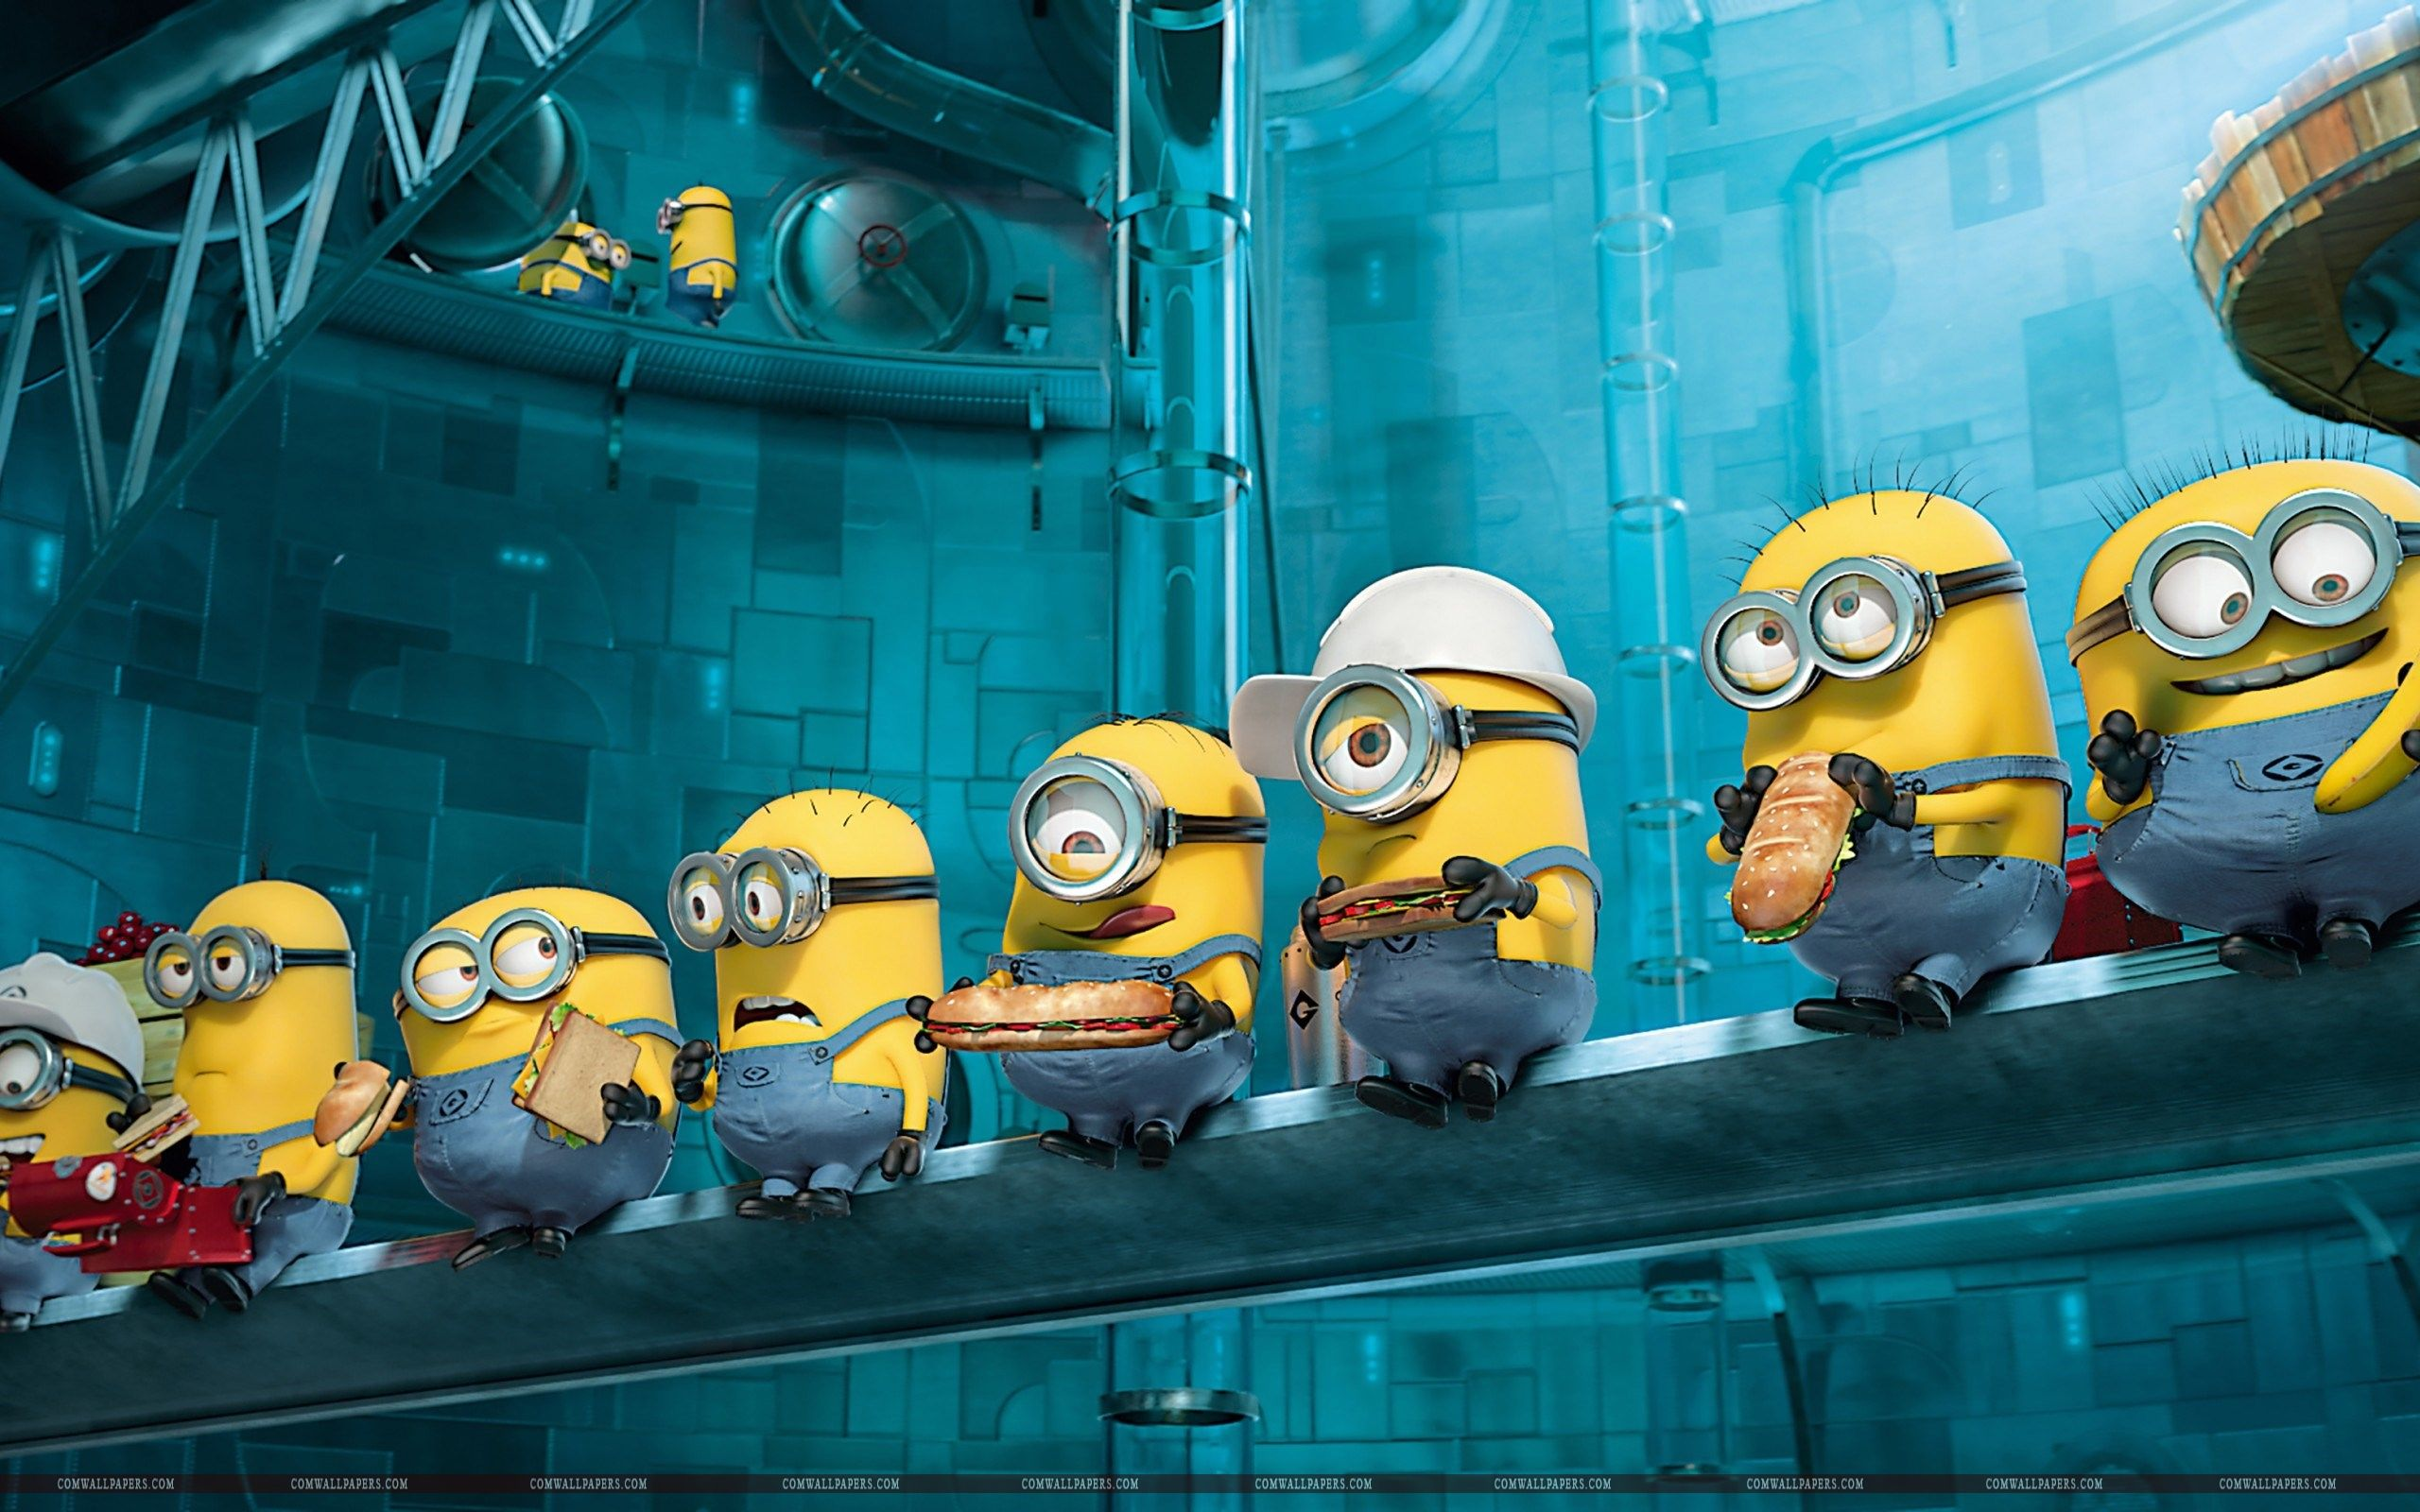 despicable me-2 minions wallpaper | animated cartoon hd wallpapers